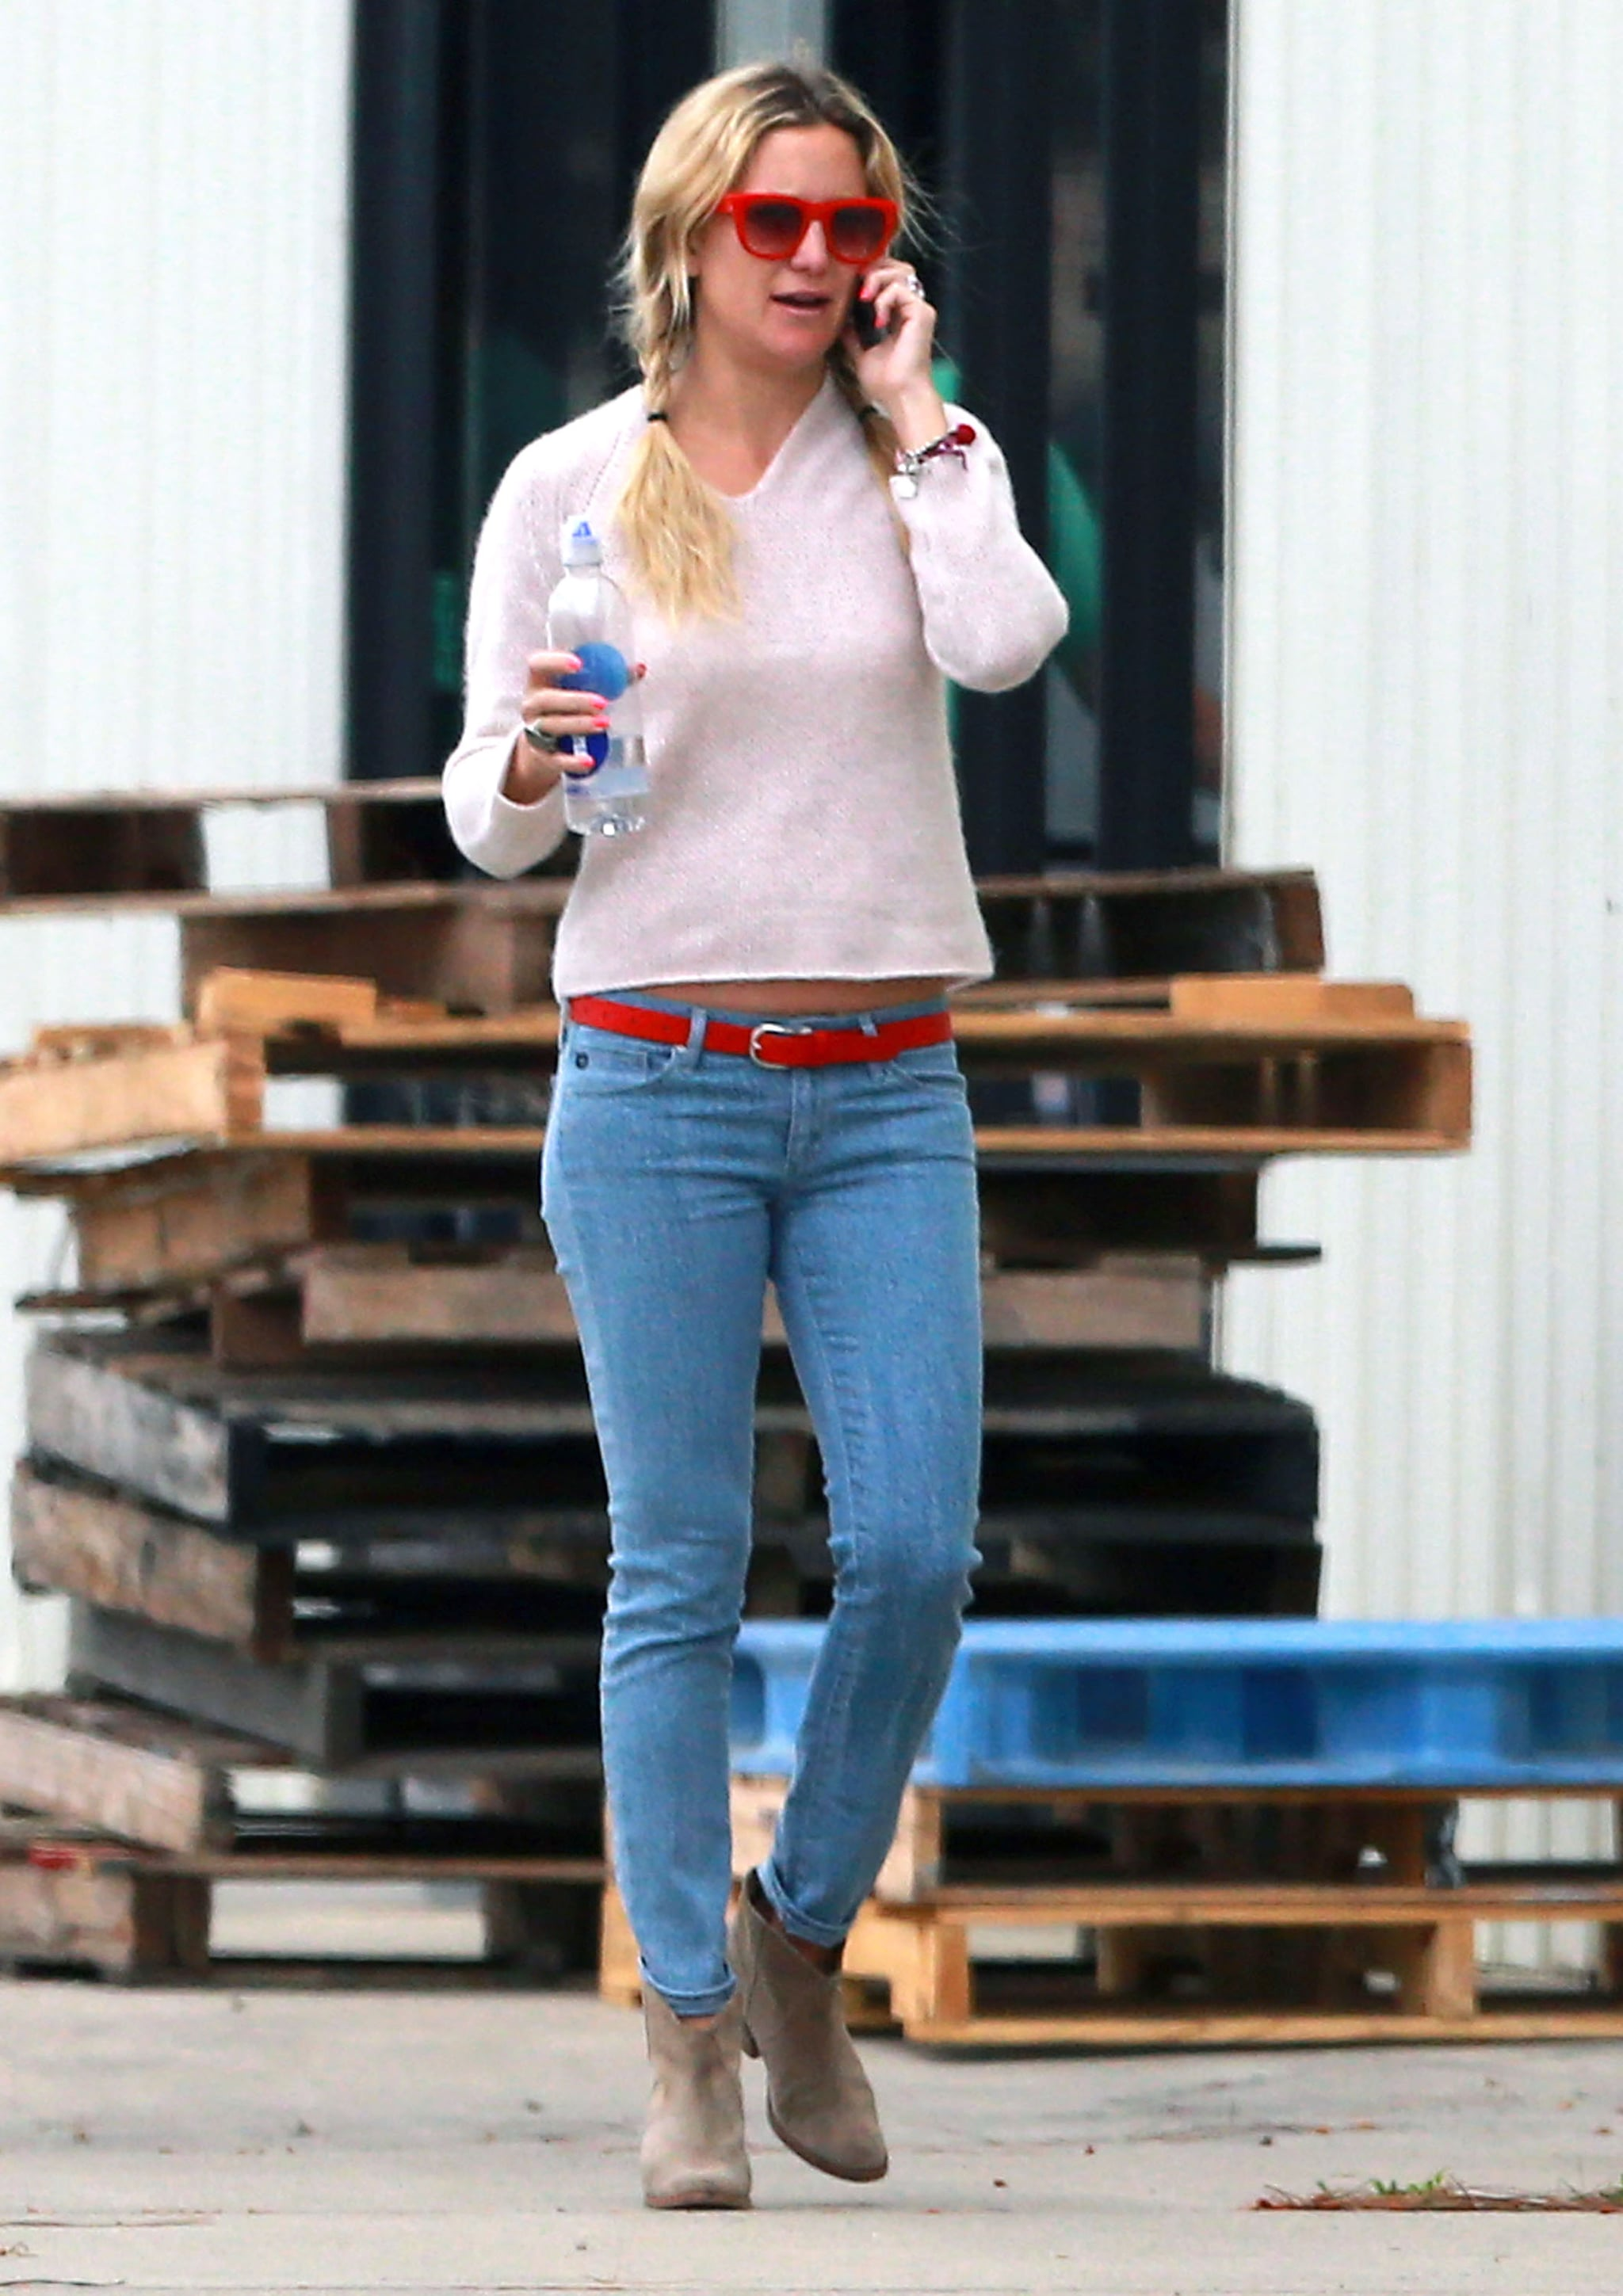 Kate Hudson talked on her phone at a winery.